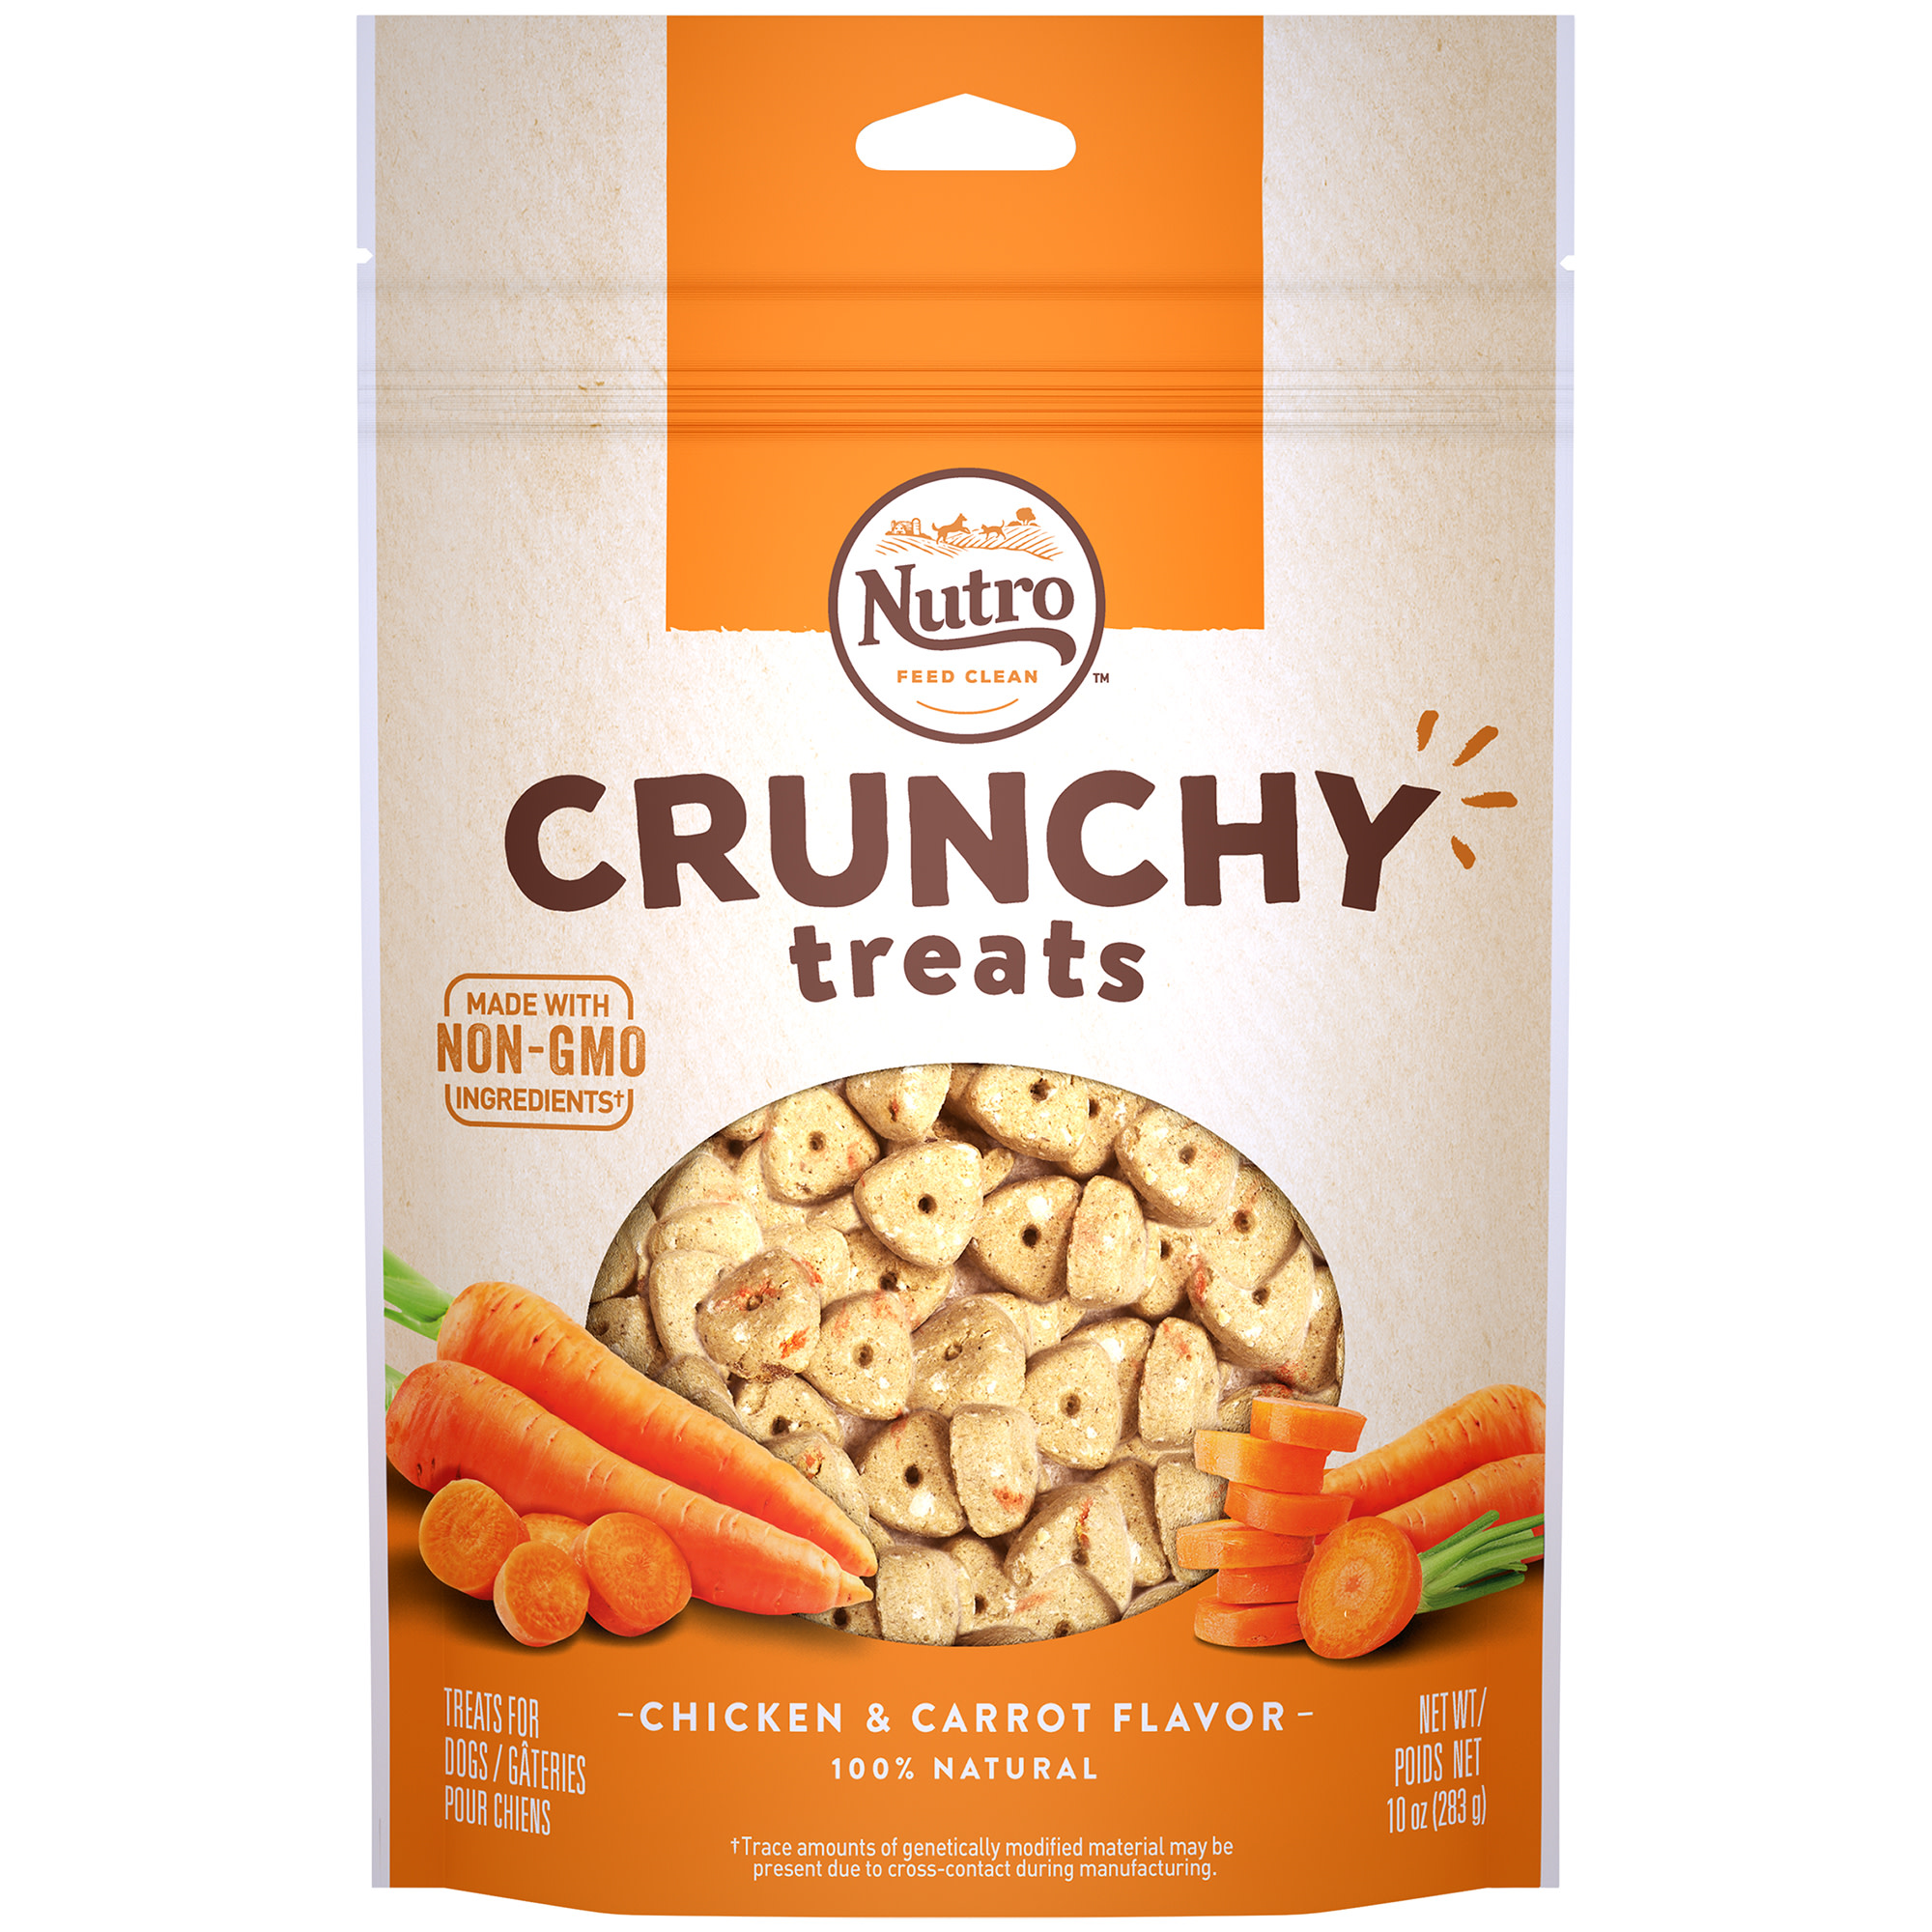 Nutro Crunchy Dog Treats, Chicken & Carrot Flavor, 10 Oz Bag by Mars Petcare Us